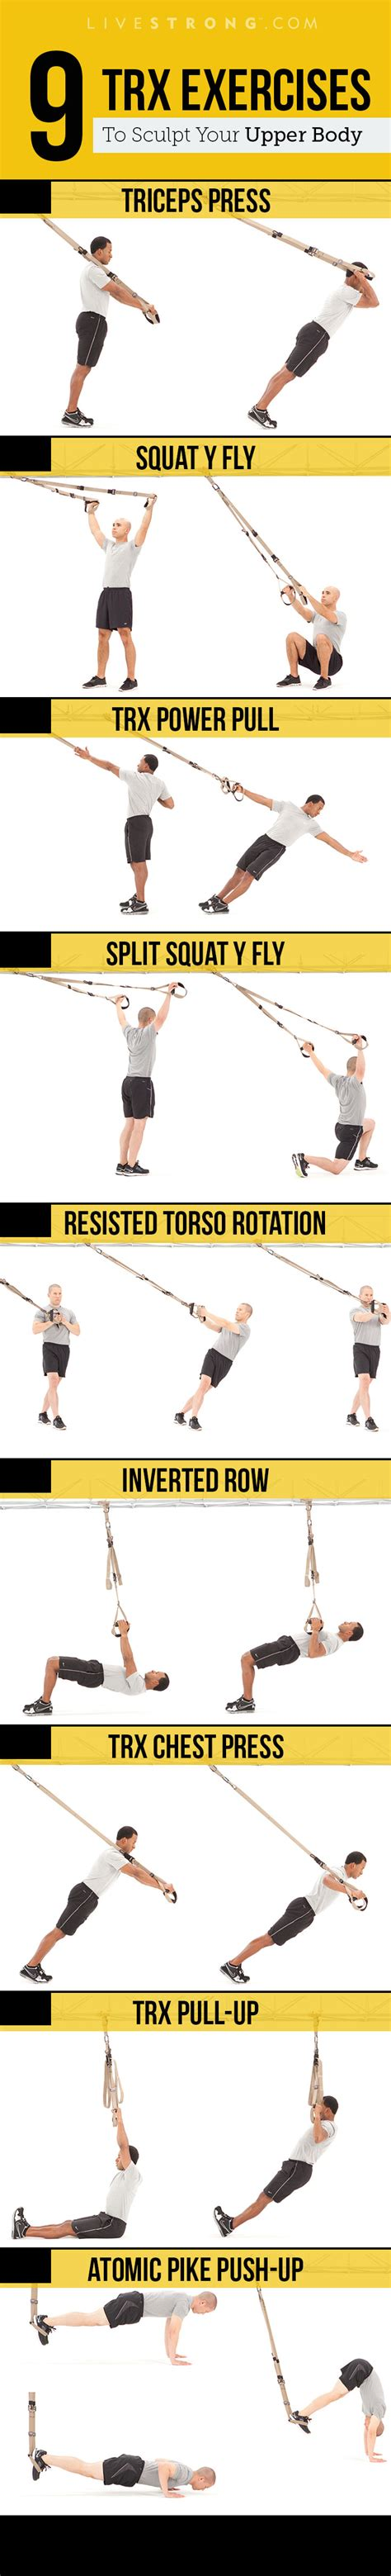 all articles trx training trx full body workout berry blog